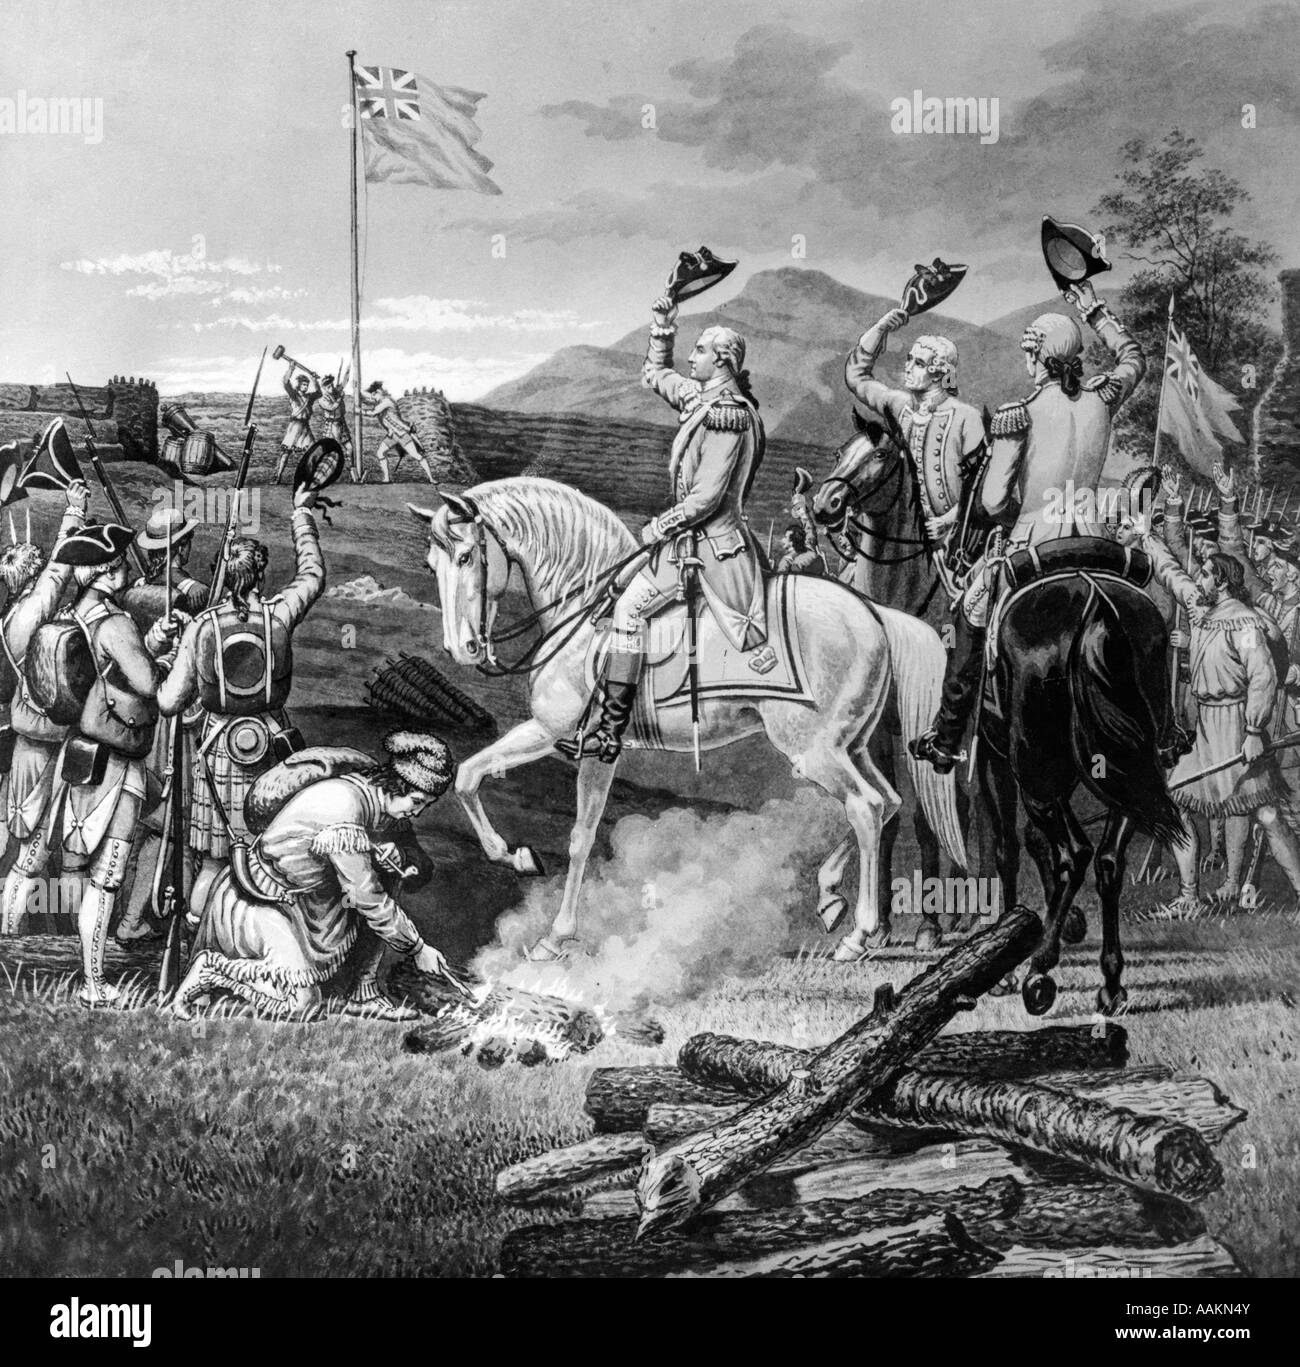 essay on the french and indian war Dbq essay (rough draft, but a good idea starter) the french and indian war altered the political, economic, and ideological relations between britain and its.